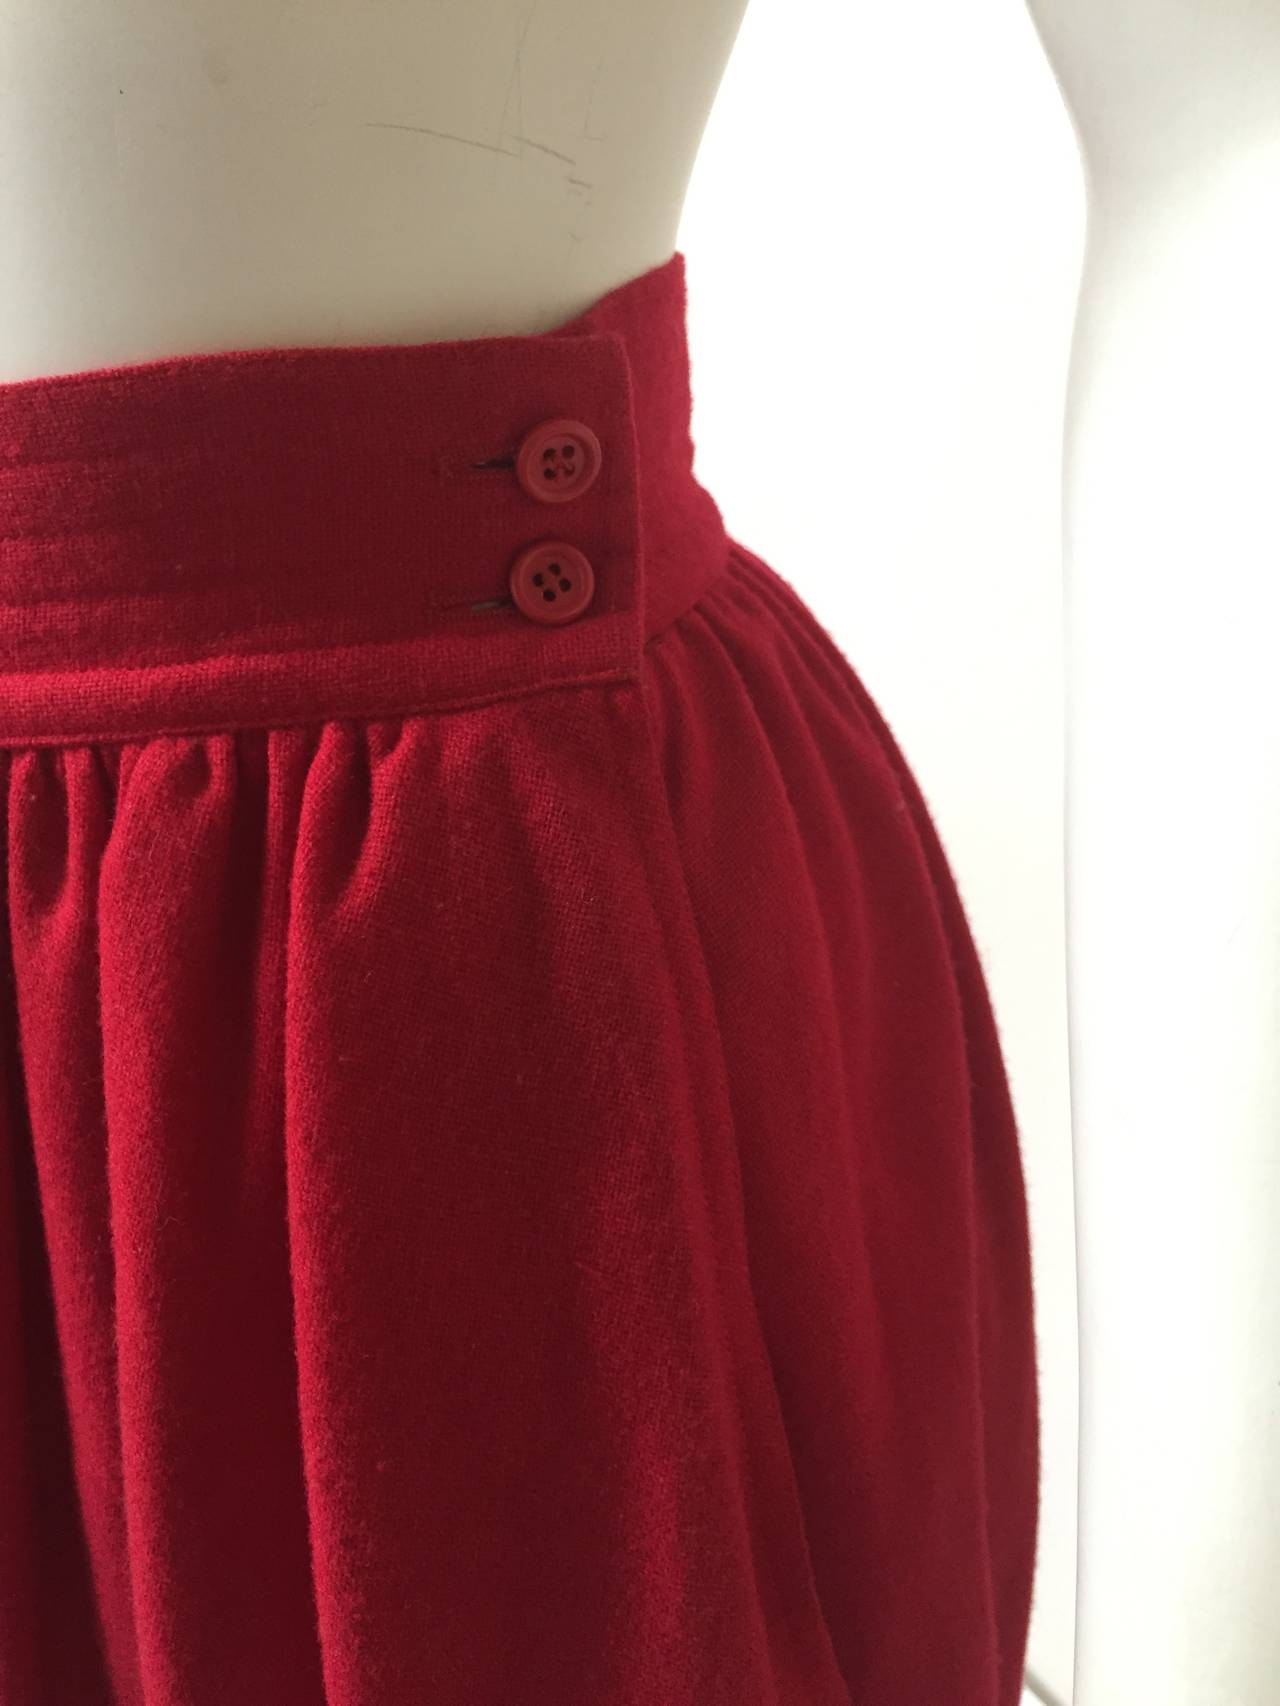 Saint Laurent Rive Gauche 70s red skirt size 4. 4